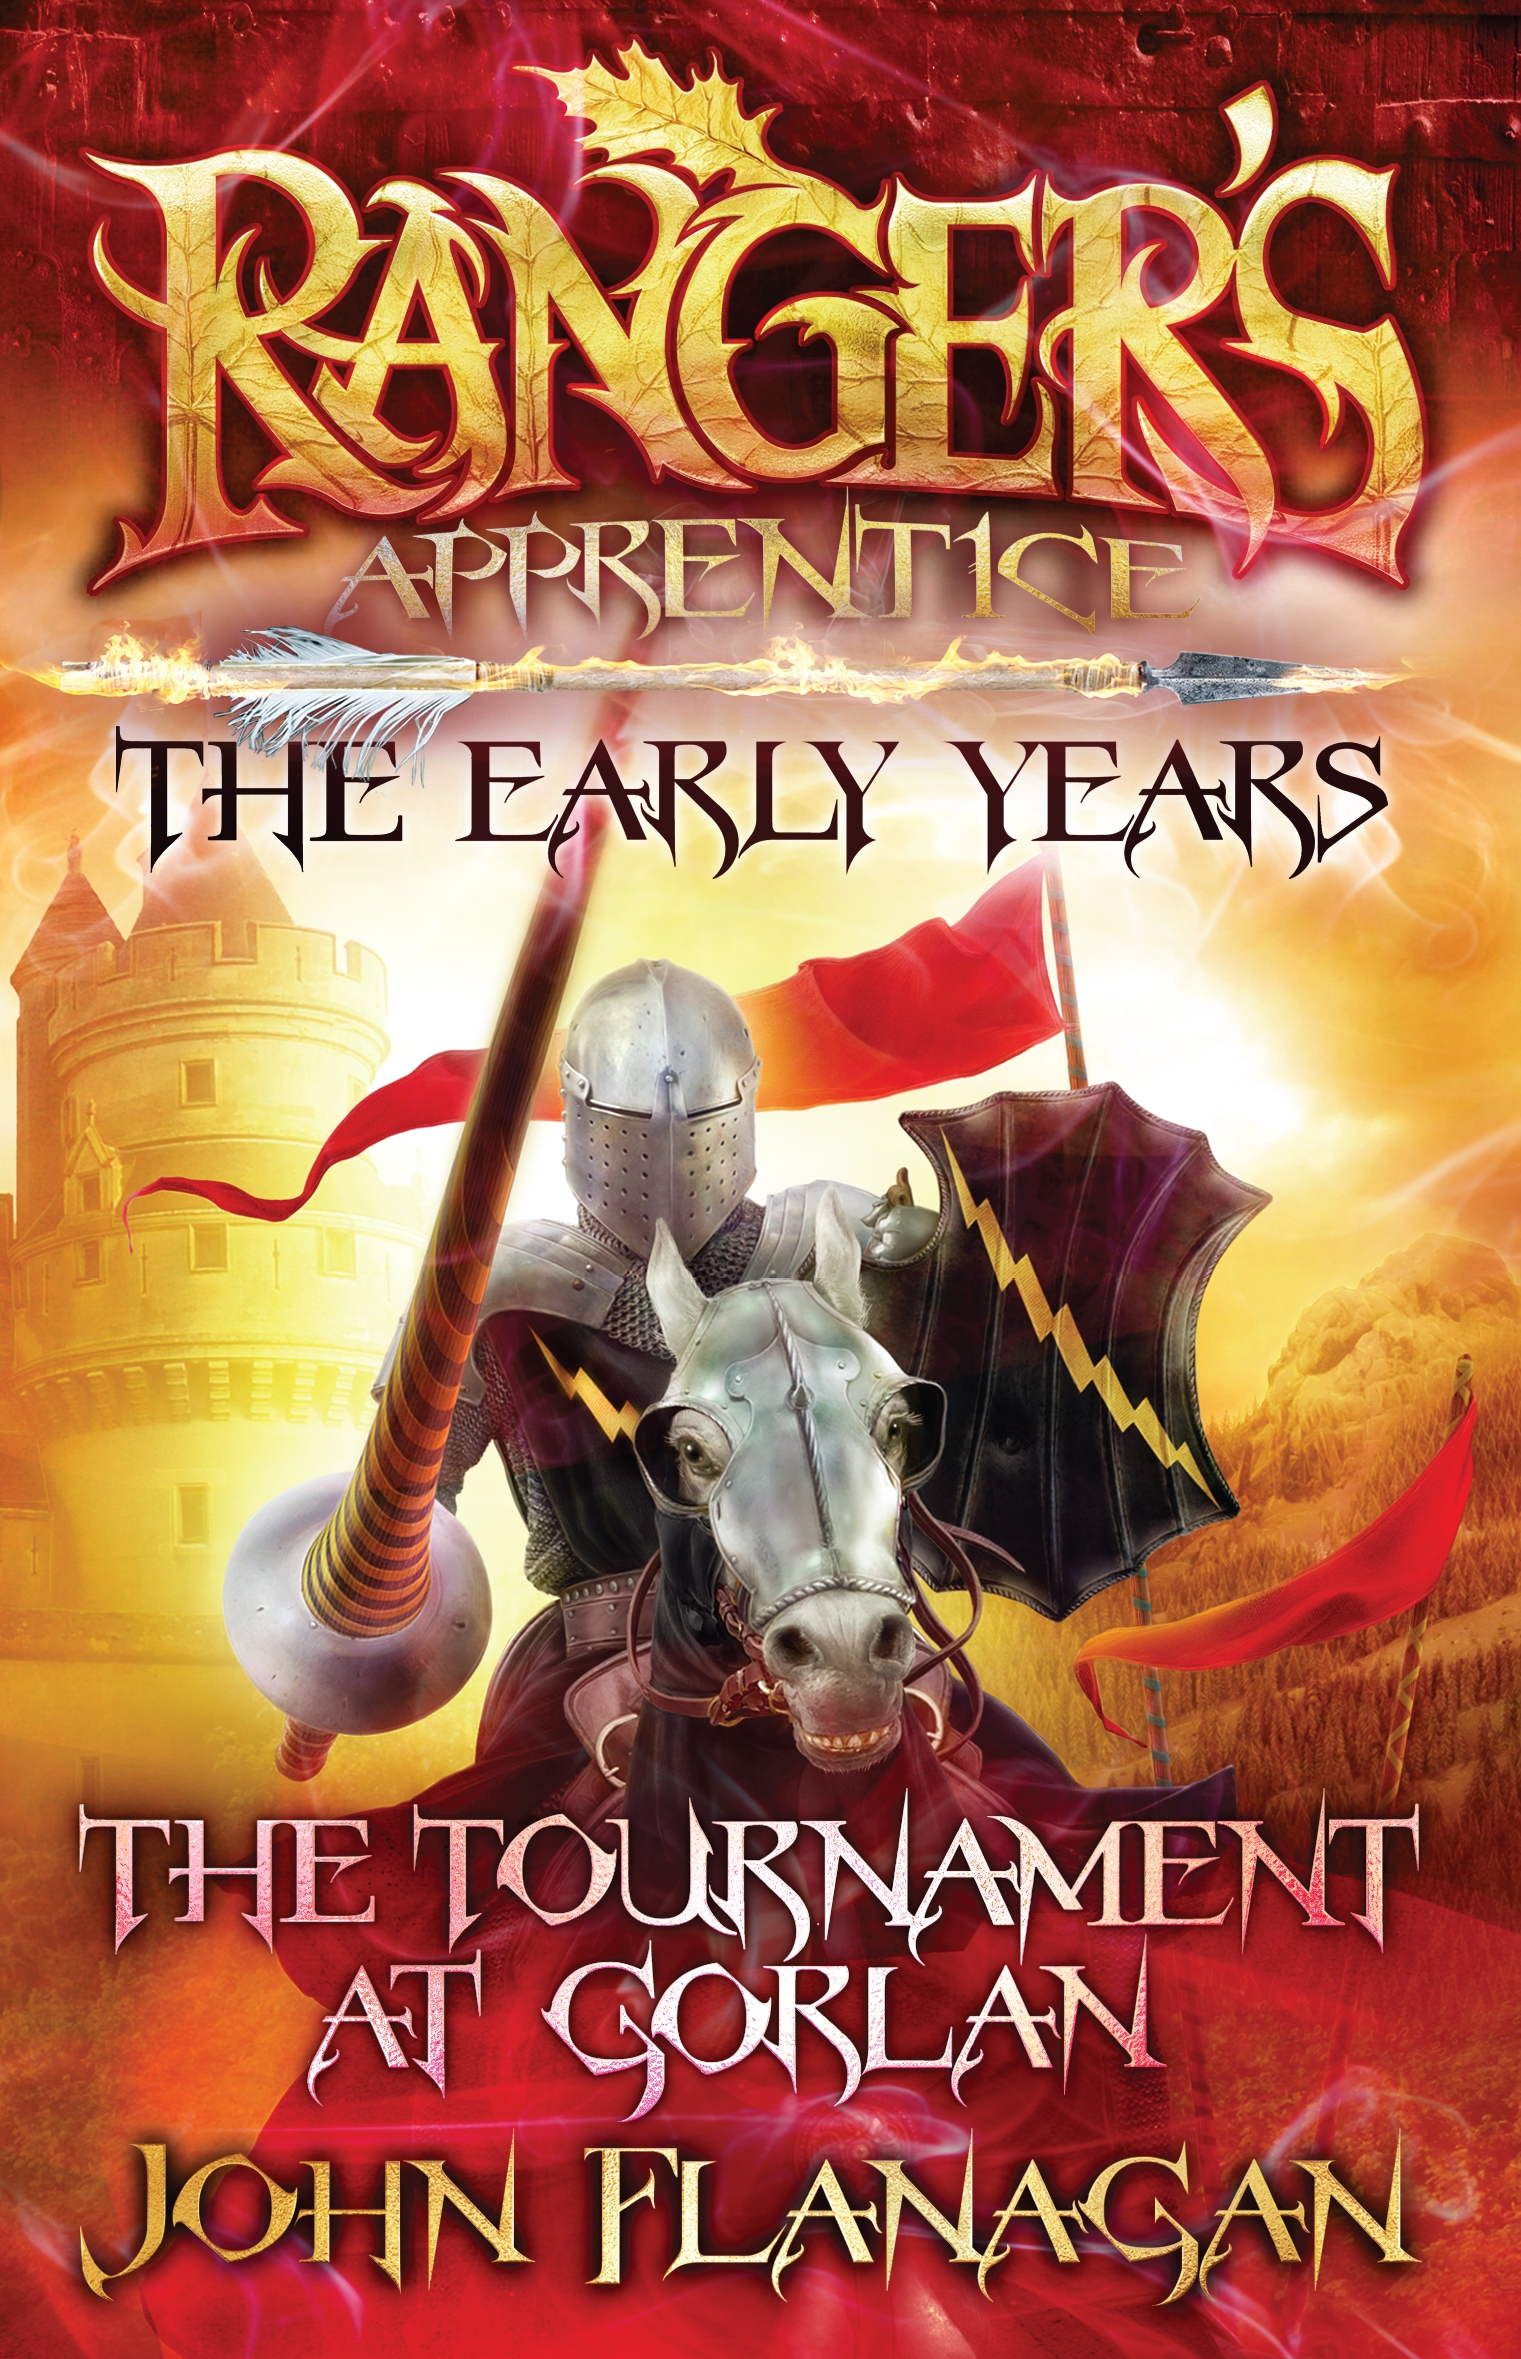 Ranger's Apprentice The Early Years 1: The Tournament at